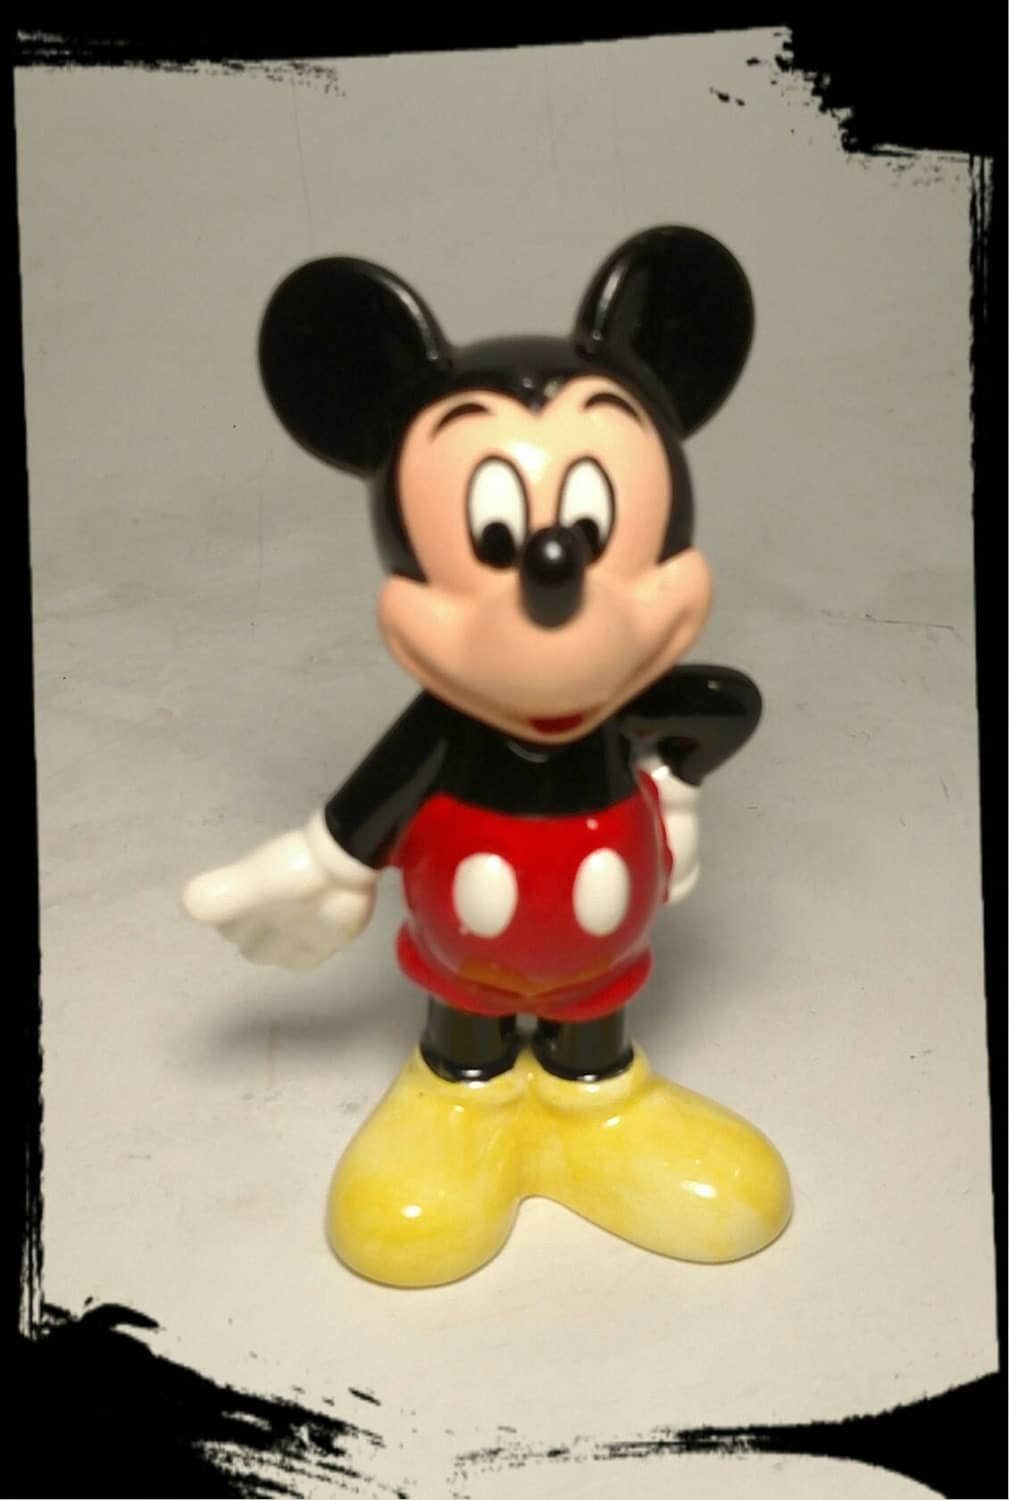 Collectible Mickey Mouse Figurine Disney Knick Knack